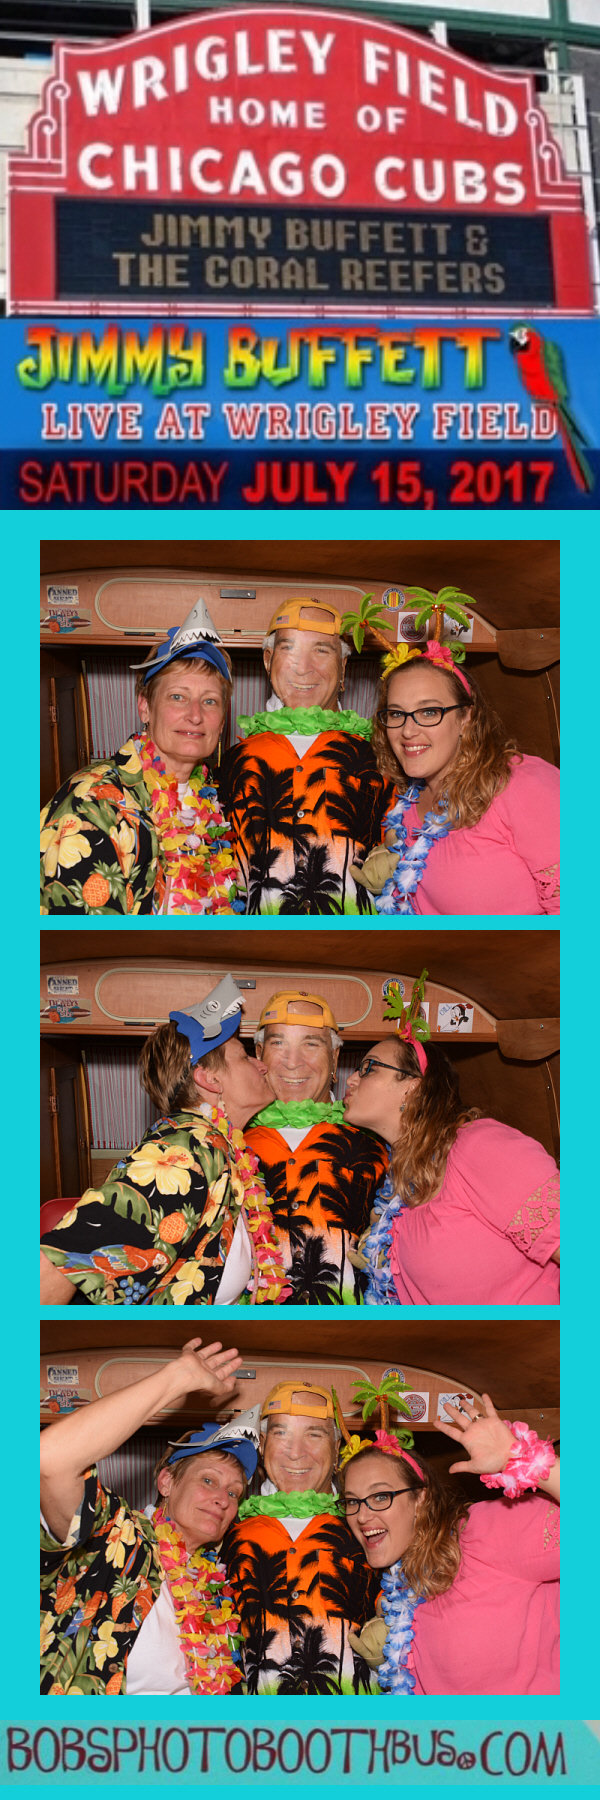 Jimmy Buffett final photo strip graphic_54.jpg